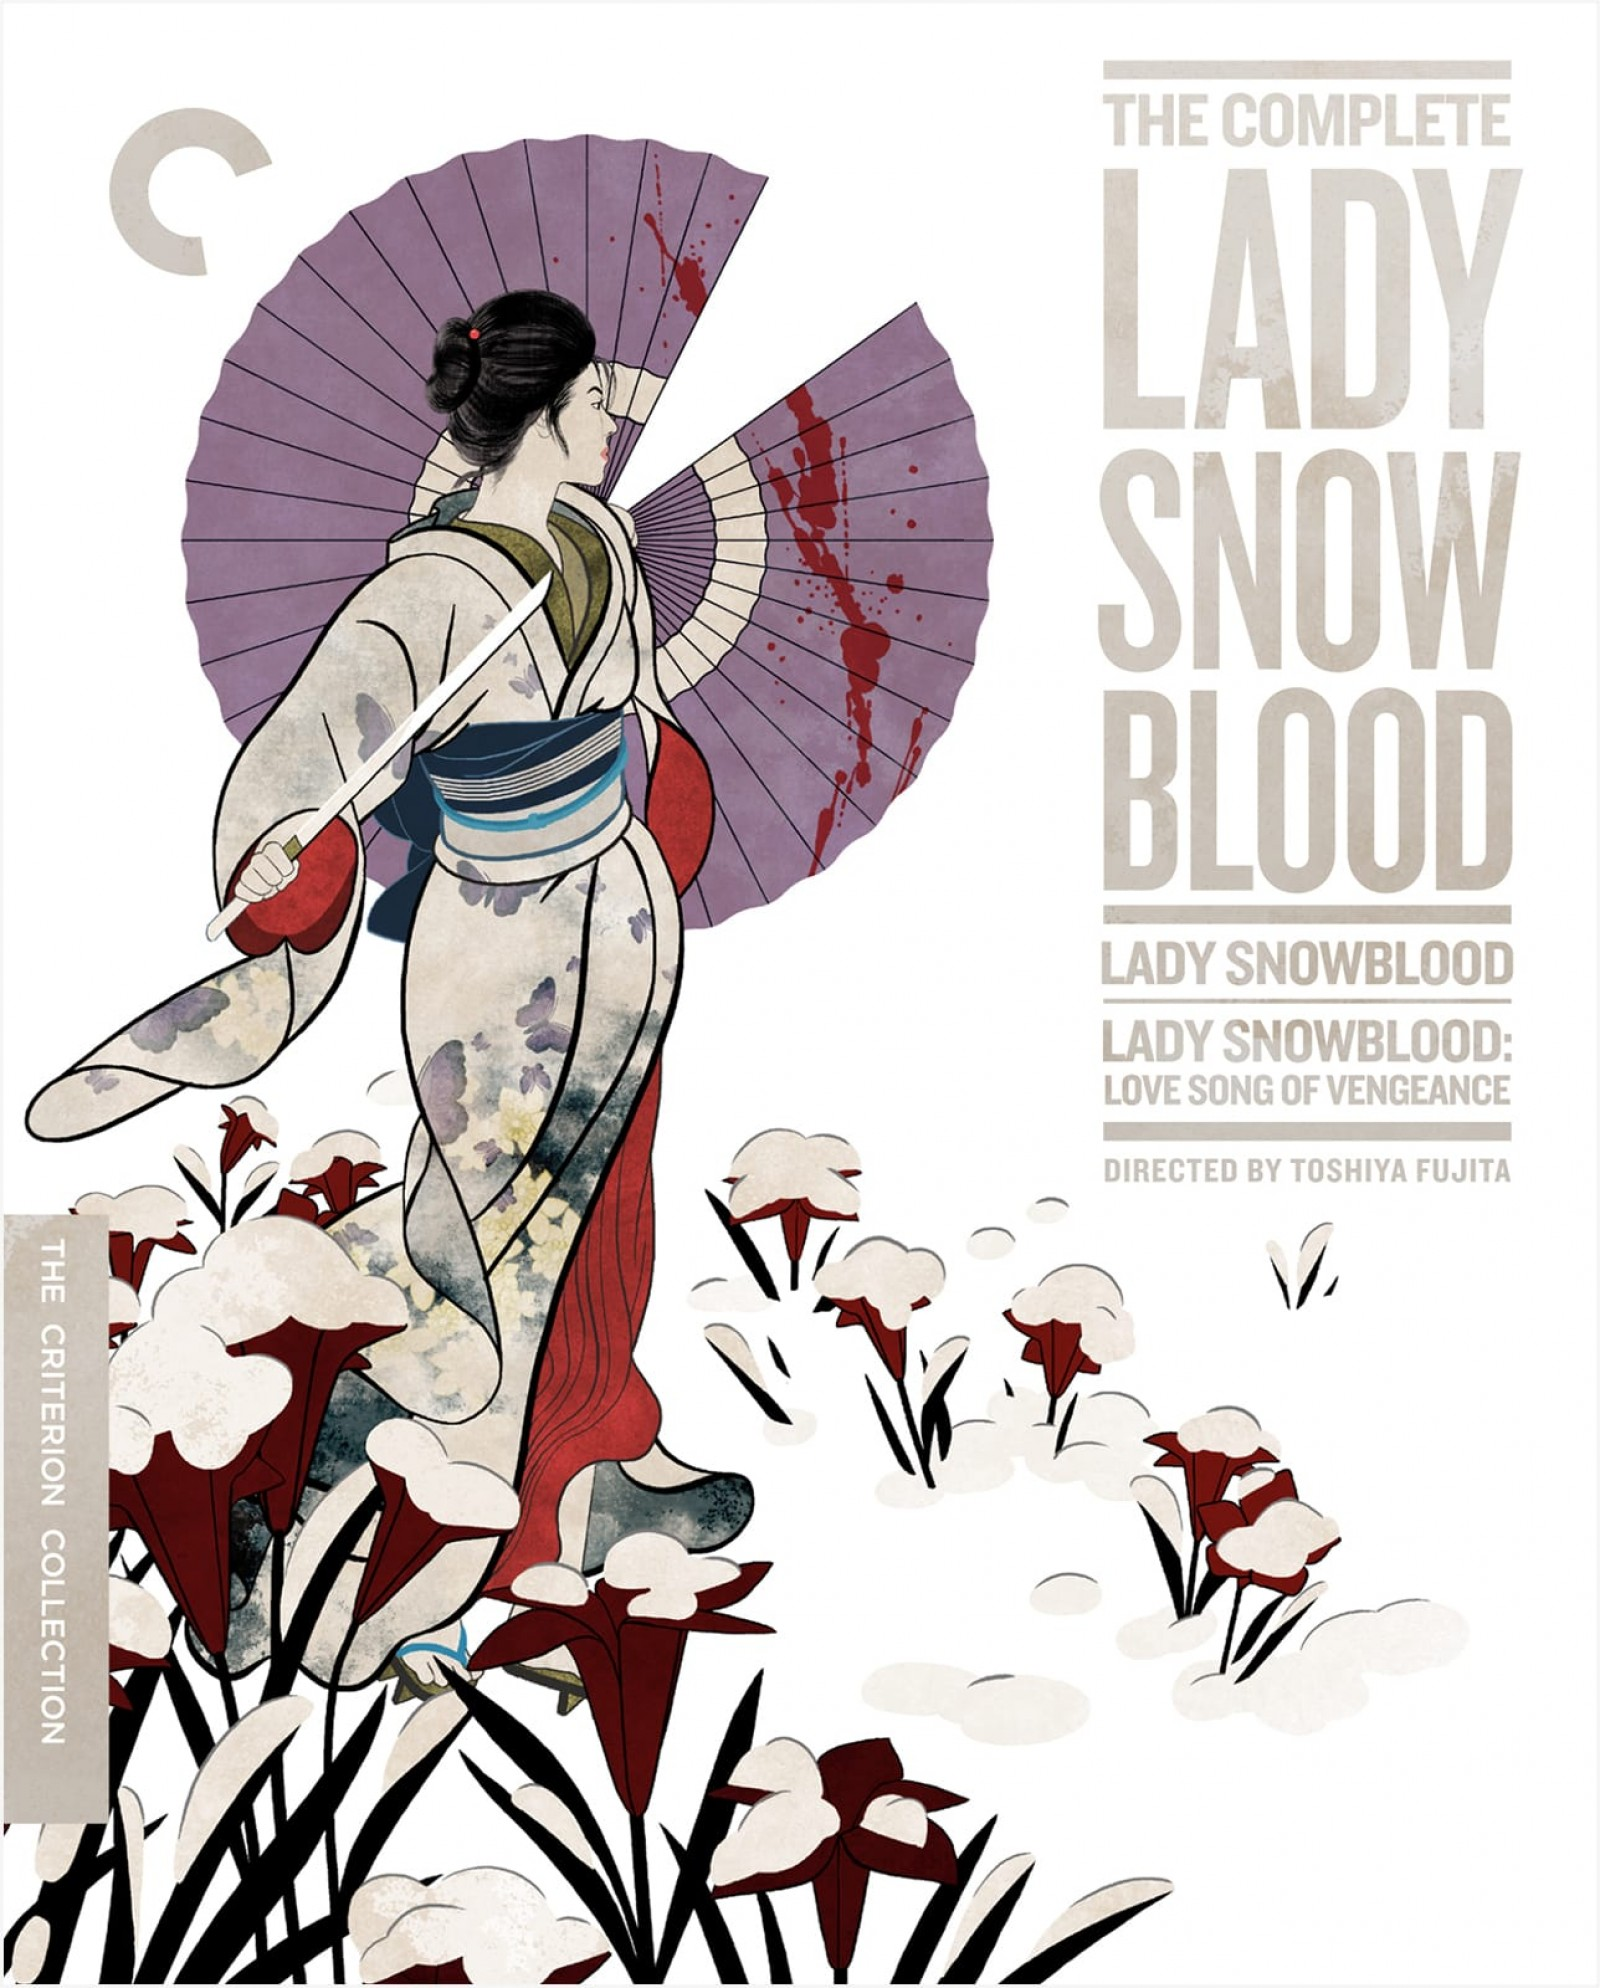 The Complete Lady Snowblood